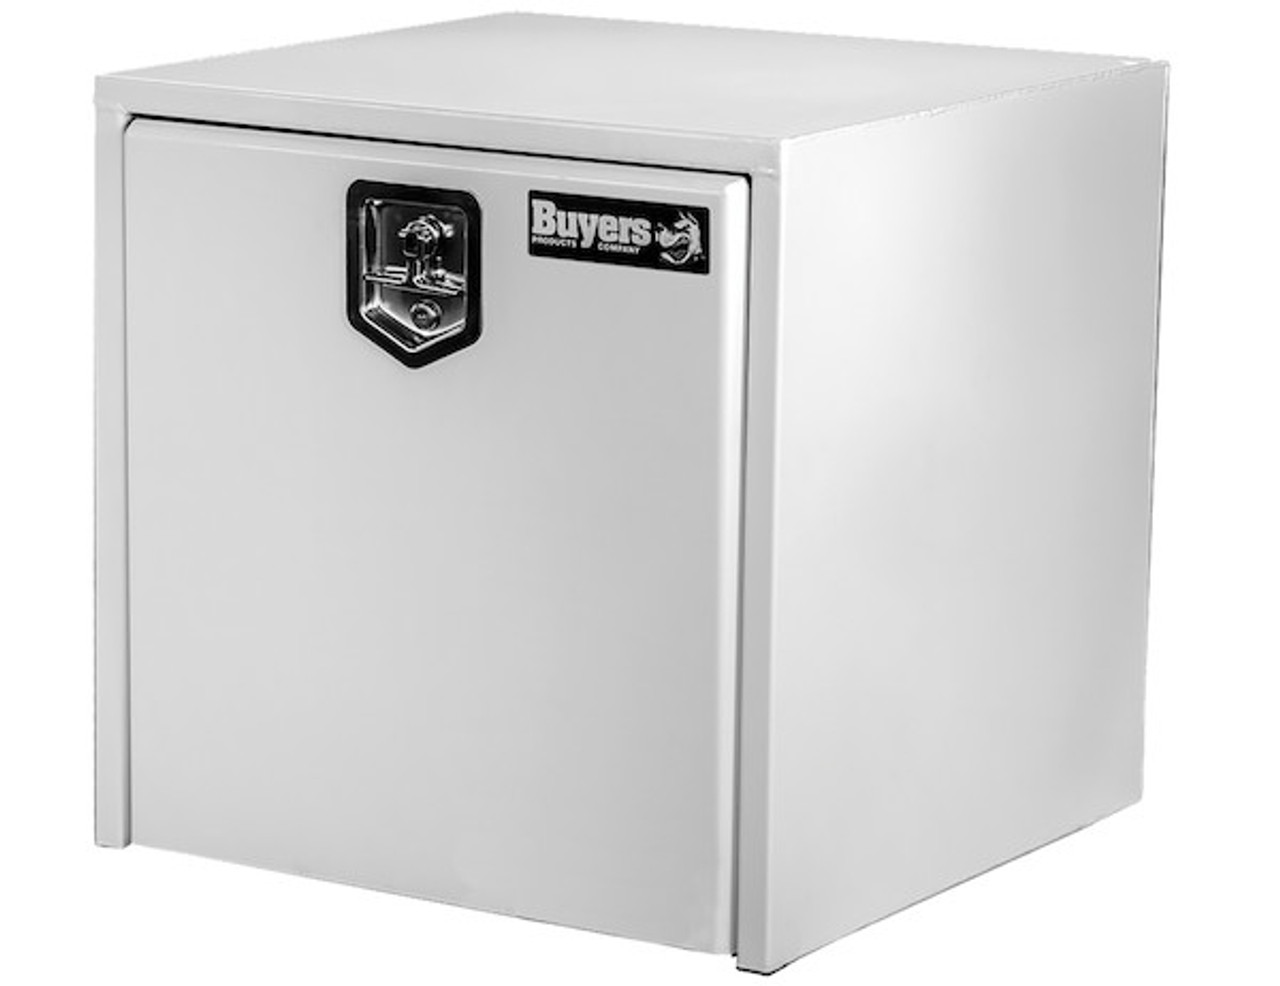 "1704400 BUYERS PRODUCTS WHITE STEEL UNDERBODY TRUCK TOOLBOX 24""HX24""DX24""W"